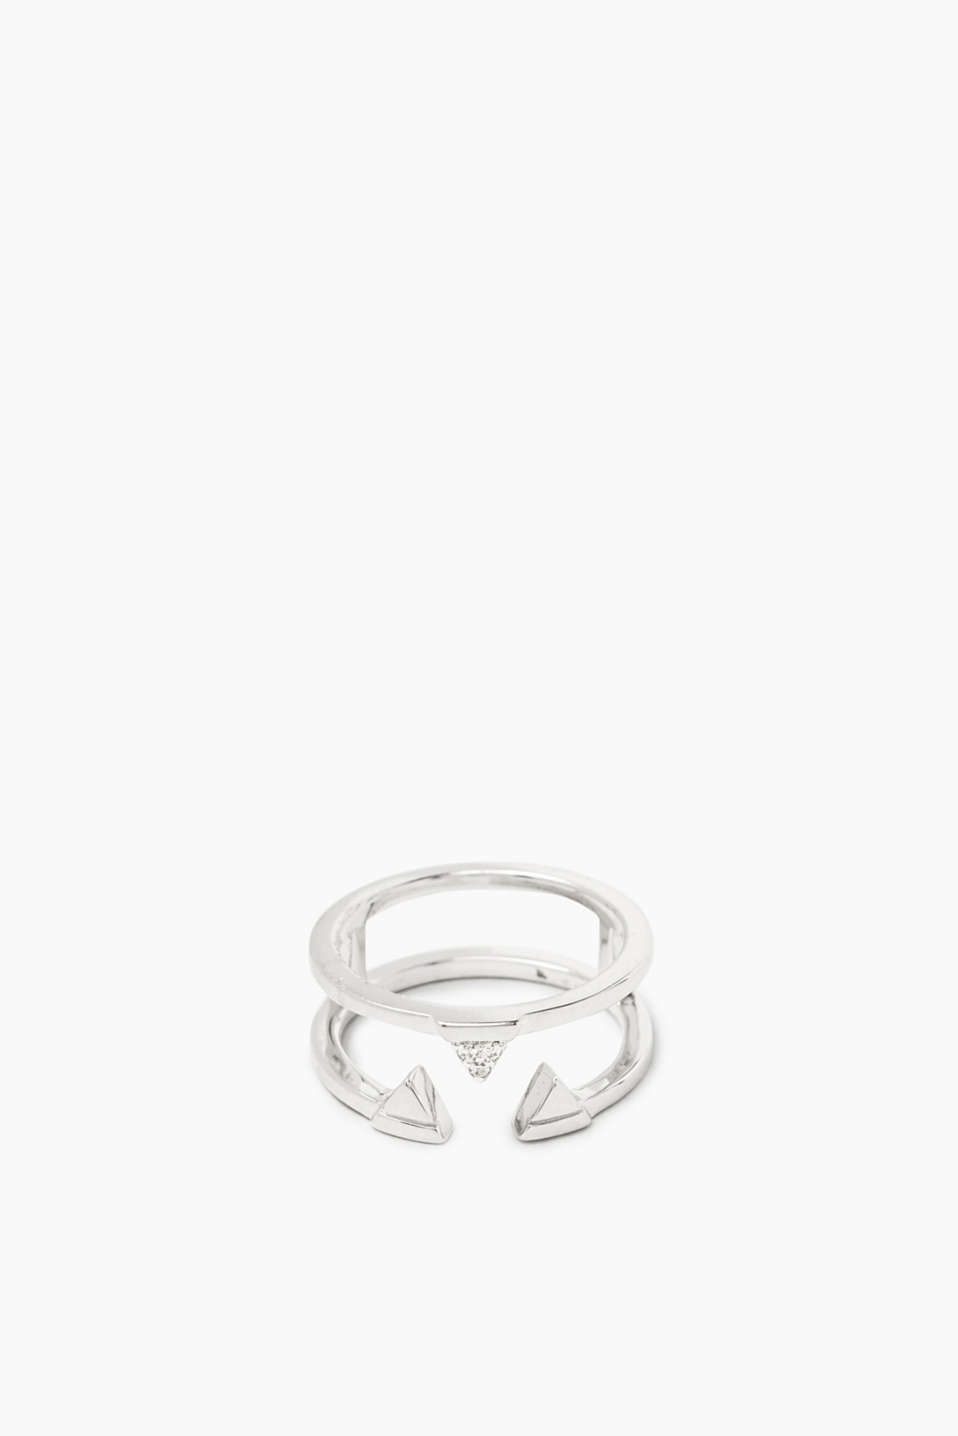 Esprit - Ring with graphic details, sterling silver